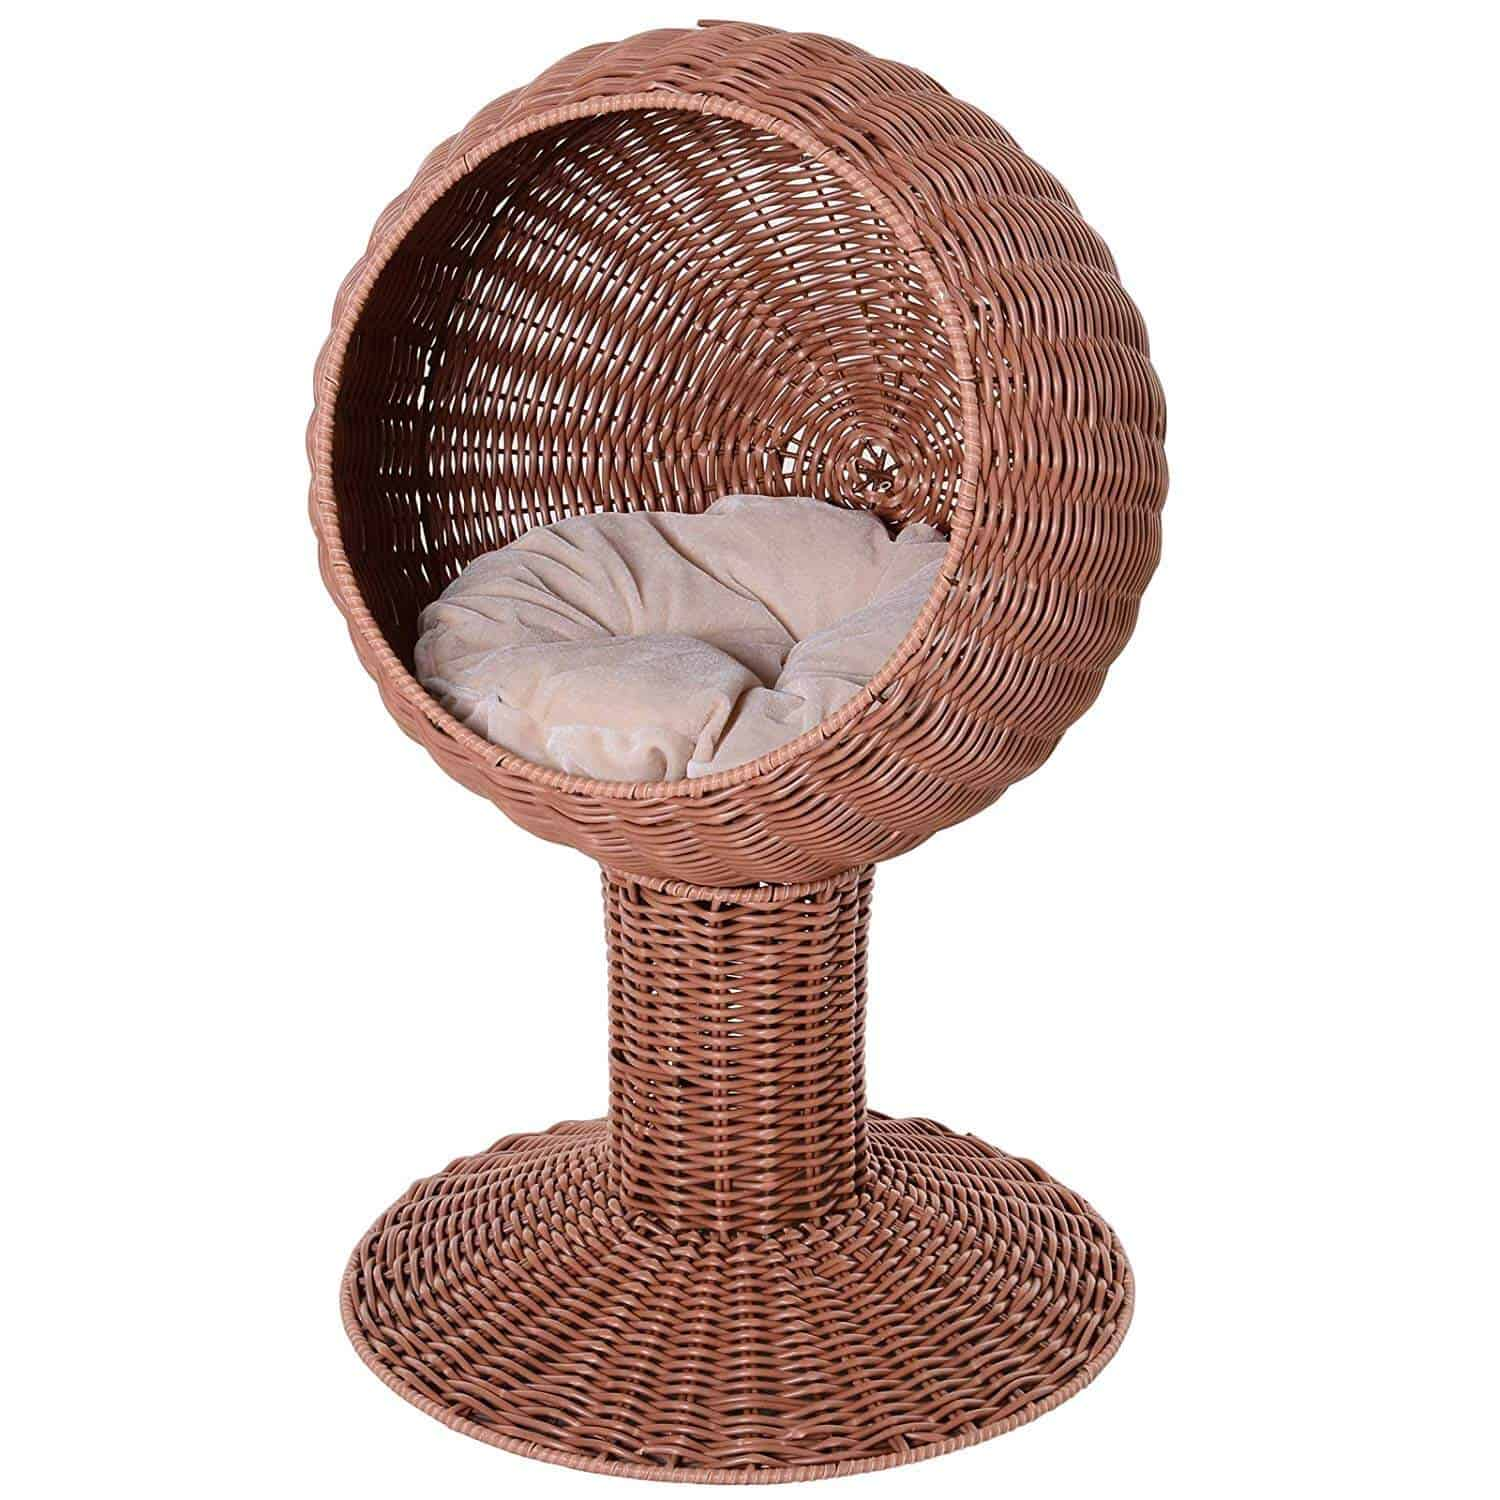 PawHut Hooded Rattan Cat Bed Basket